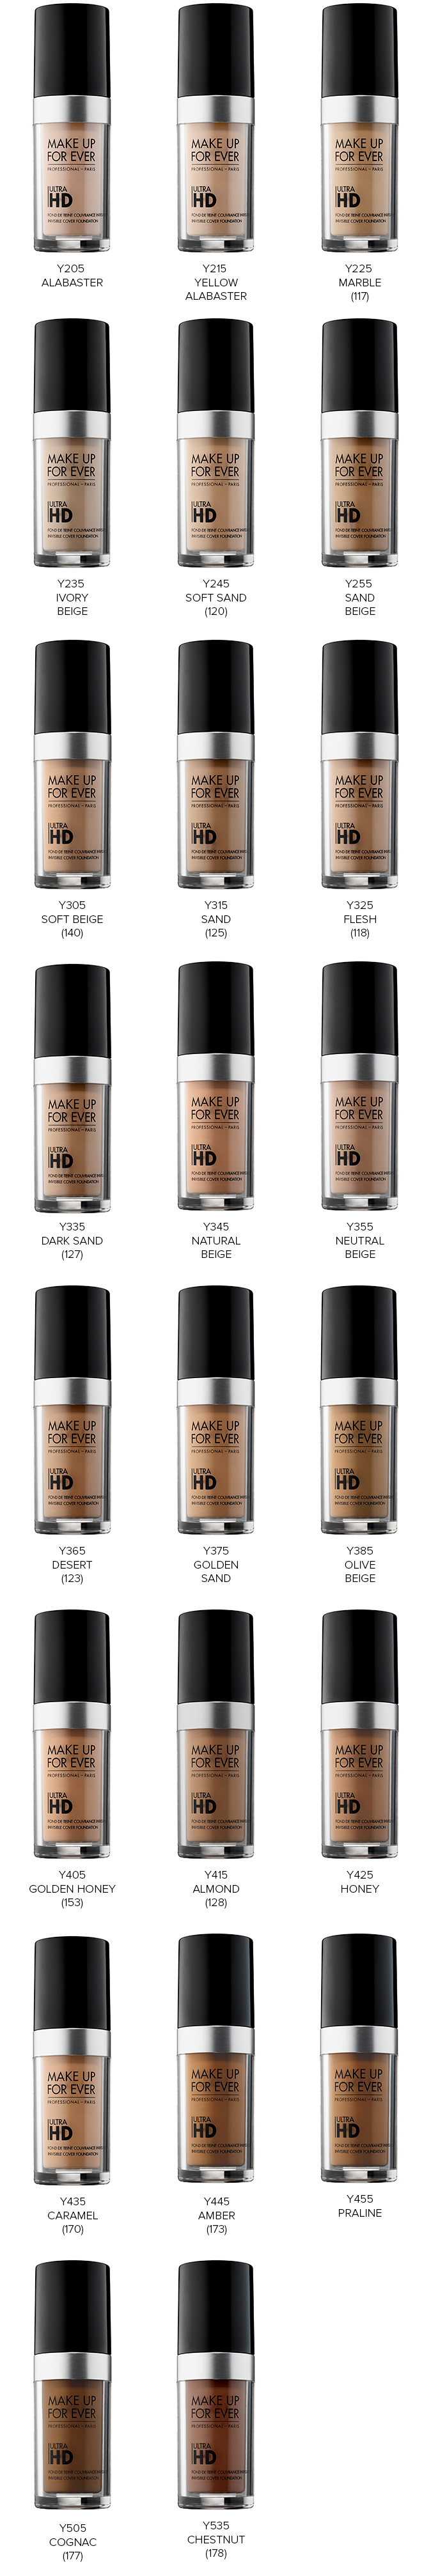 Make Up For Ever Ultra HD Foundation